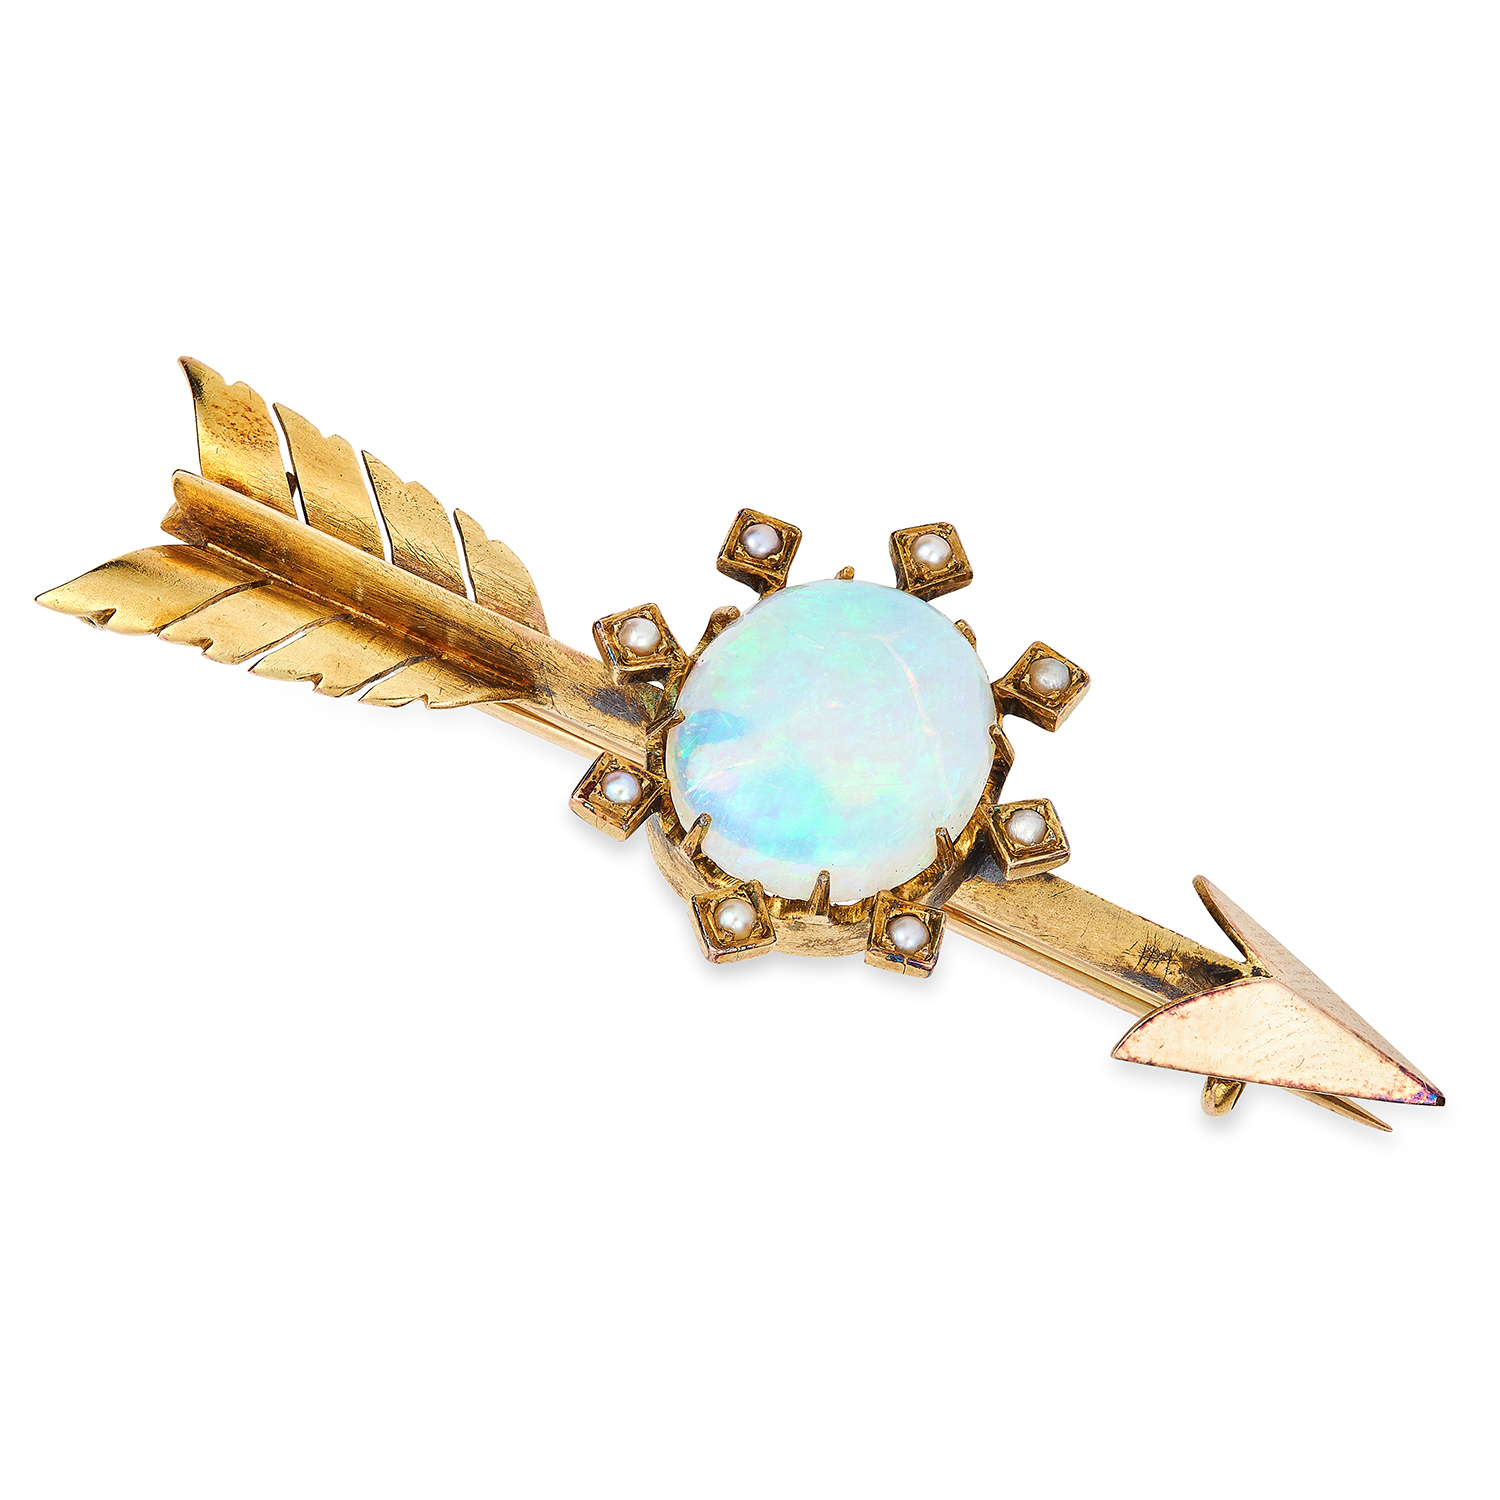 OPAL AND PEARL ARROW BROOCH set with a cabochon opal and seed pearls, 6.2cm, 9.7g.